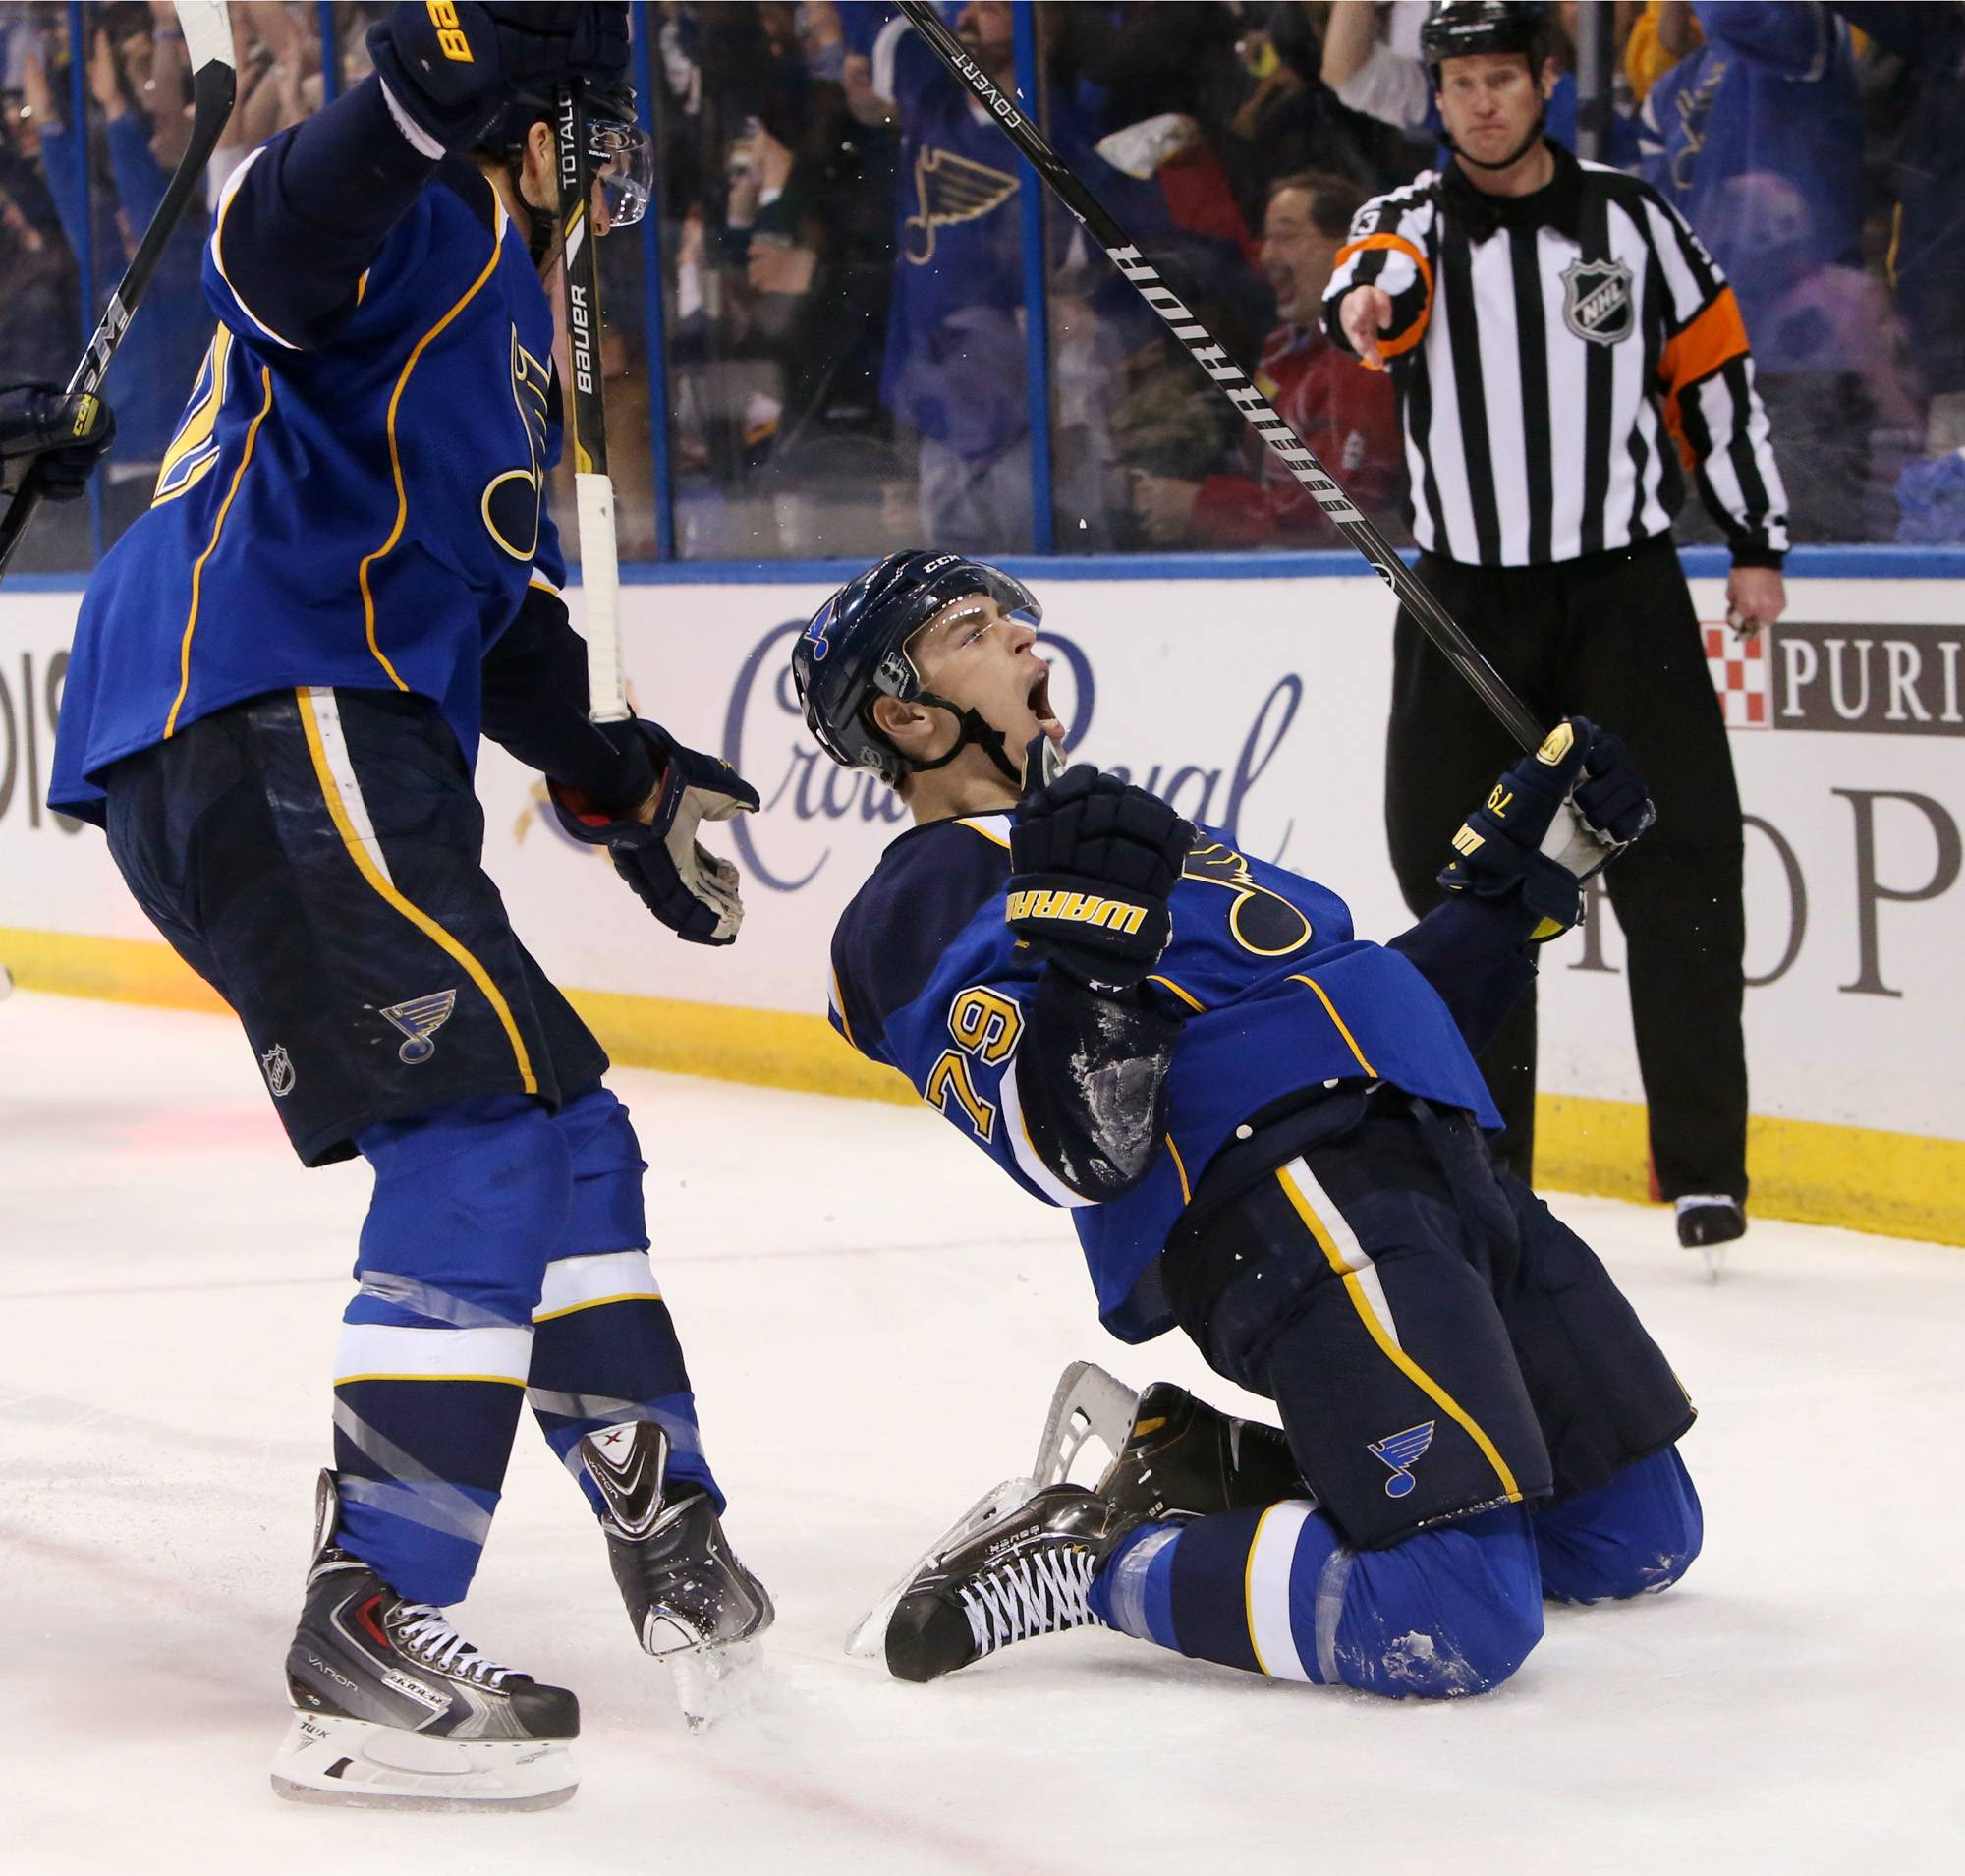 St. Louis Blues right wing Adam Cracknell, right, reacts after scoring against the Chicago Blackhawks during the first period of Game 1 of an NHL hockey opening-round playoff series, Thursday, April 17, 2014, in St. Louis. (AP Photo/St. Louis Post-Dispatch, Chris Lee) EDWARDSVILLE OUT ALTON OUT